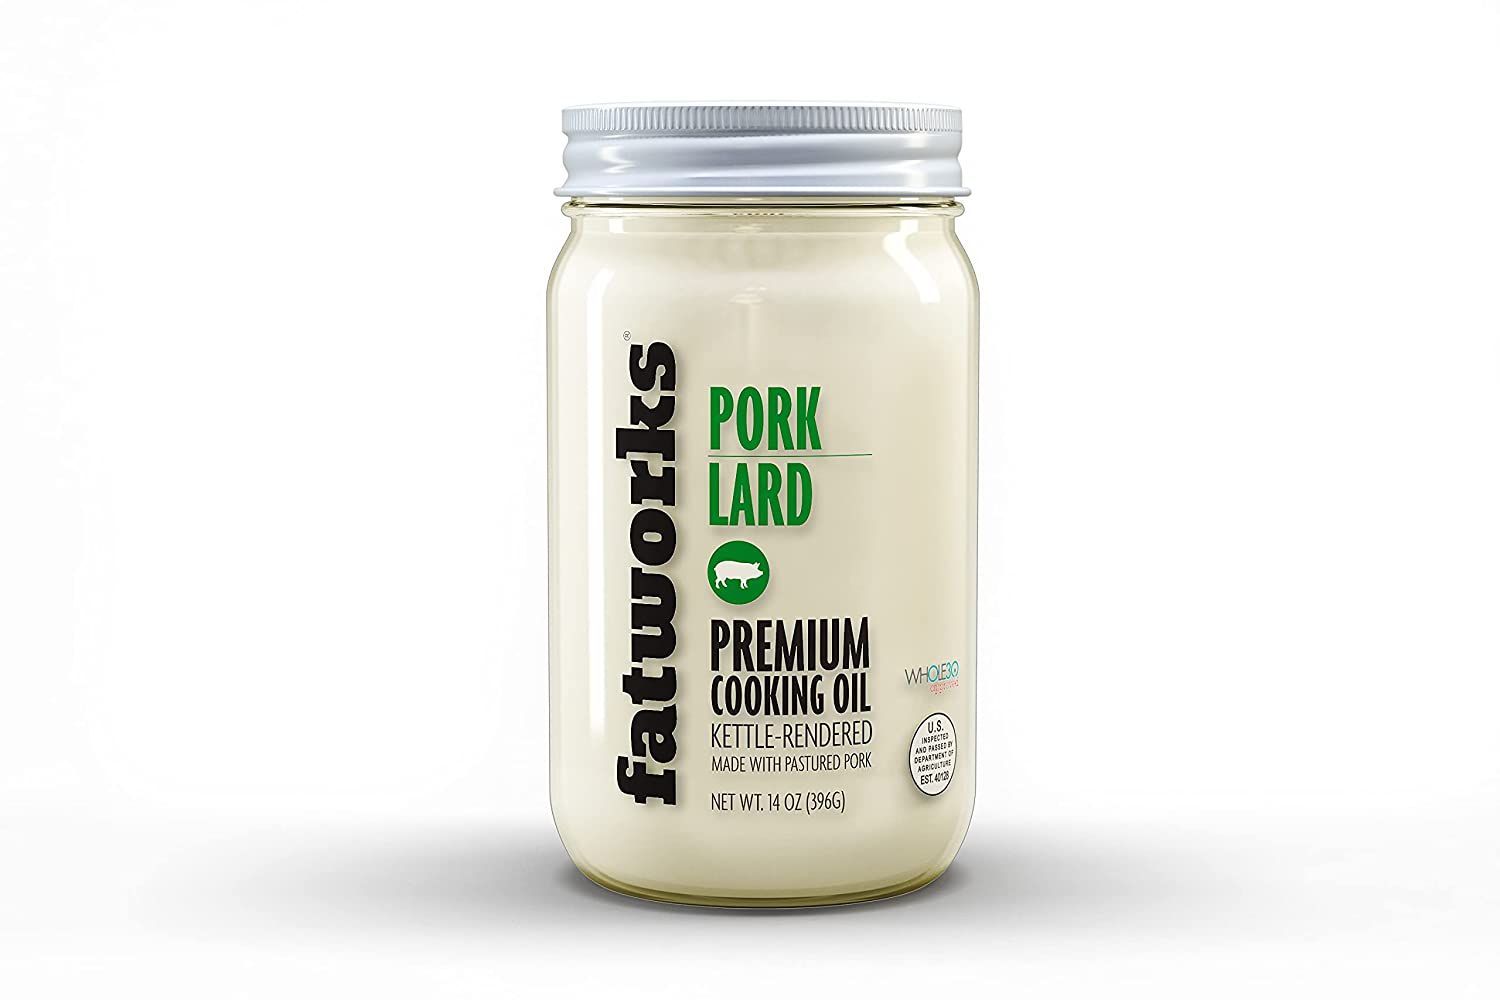 Fatworks Premium Pasture Raised Lard. The Original Non-Hydrogenated Pasture-Raised Lard crafted for Traditional, Keto, and Paleo Chefs. Artisanally Rendered, WHOLE30 APPROVED, Glass Jar, 14oz.  $35.95 BUY     IngredientsPasture Raised NON-GMO Rendered Pork Fat, Organic Rosemary Extract (0.1%) BrandFatworks Weight14 Ounces Item Dimensions LxWxH3 x 6 x 4 inches Package Weight4 Pounds    About this item THE ORIGINAL PREMIUM PREMIUM PASTURE RAISED LARD: This was the first nationally sold Non-Hydrogenated, Preservative Free, Pasture Raised Pork Lard. Sourced exclusively from sustainable and regenerative U.S. Small Family Farms. Crafted for fat-loving chefs, Keto, Paleo, WAP, AIP followers and especially for those that value quality above all. Artisanally rendered small kettles for (and by) fat-fanatics. Use as the perfect substitute to industrialized seed oils and cheap, inhumanely sourced lards. FAT FOR THOSE WHO VALUE QUALITY FIRST: Since 2010 we crafted the first ever preservative free, fine filtered, glass jarred, Pasture Raised for who understand that high quality animal fats are an essential (and delicious) part of a healthy lifestyle. Since then, Fatworks has been the go-to fat for fat loving chefs as well as the Paleo, Primal, Keto, Carnivore, Whole30 WAP, and AIP and has spawned many imitators. PRAISE THE LARD: Delicious and versatile cooking fat that is perfect for sautéing, roasting, frying and baking. Lift your homesteader style cooking or KETO, PALEO, WAP, AIP and WHOLE30 cooking to new levels, or use it as a natural shortening for incredible baking. We suggest roasted veggies and greens, authentic tortillas, re-fried beans, fried chicken, pies, traditional biscuits, confit, marinades and dressings. Makes the perfect lard for the homesteader or traditional lard soap maker. USDA CERTIFIED AND TESTED: 100% USDA Certified Pasture Raised Pork Lard. No artificial ingredients, no added hormones, no preservatives, and no antibiotics. We add .%01 Organic Rosemary Ex